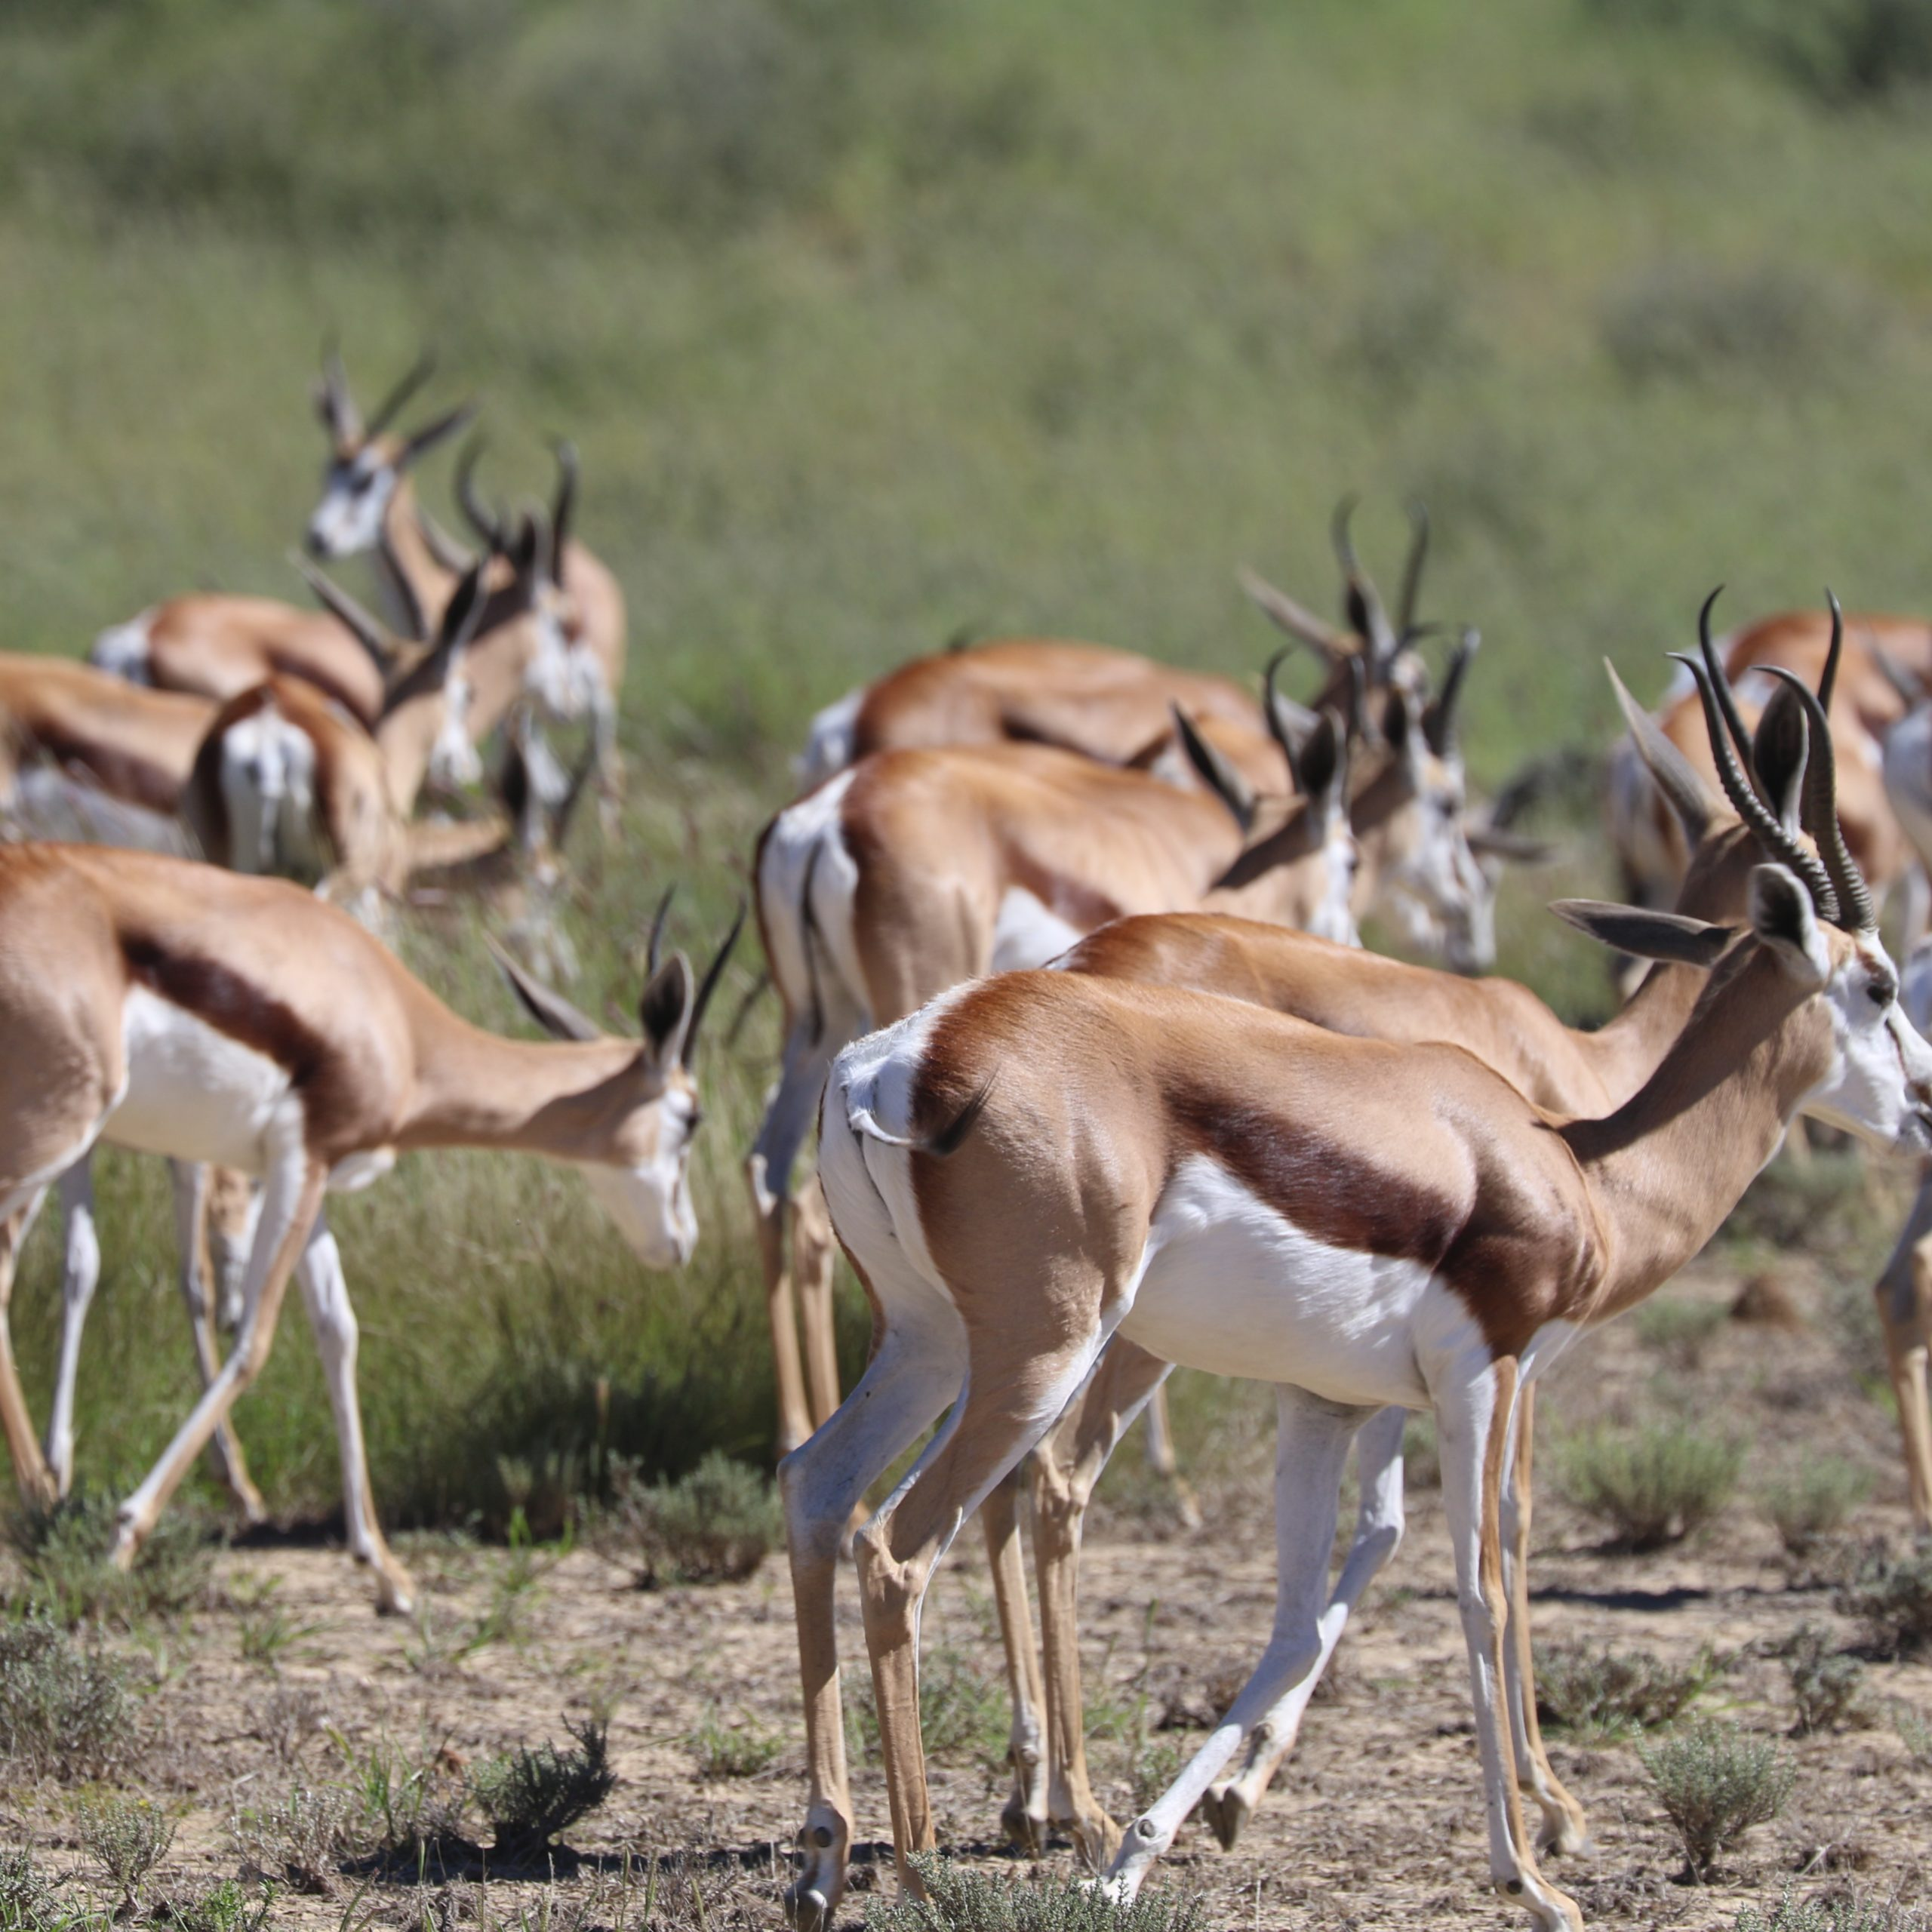 Day 7 | The Kgalagadi Transfrontier Park